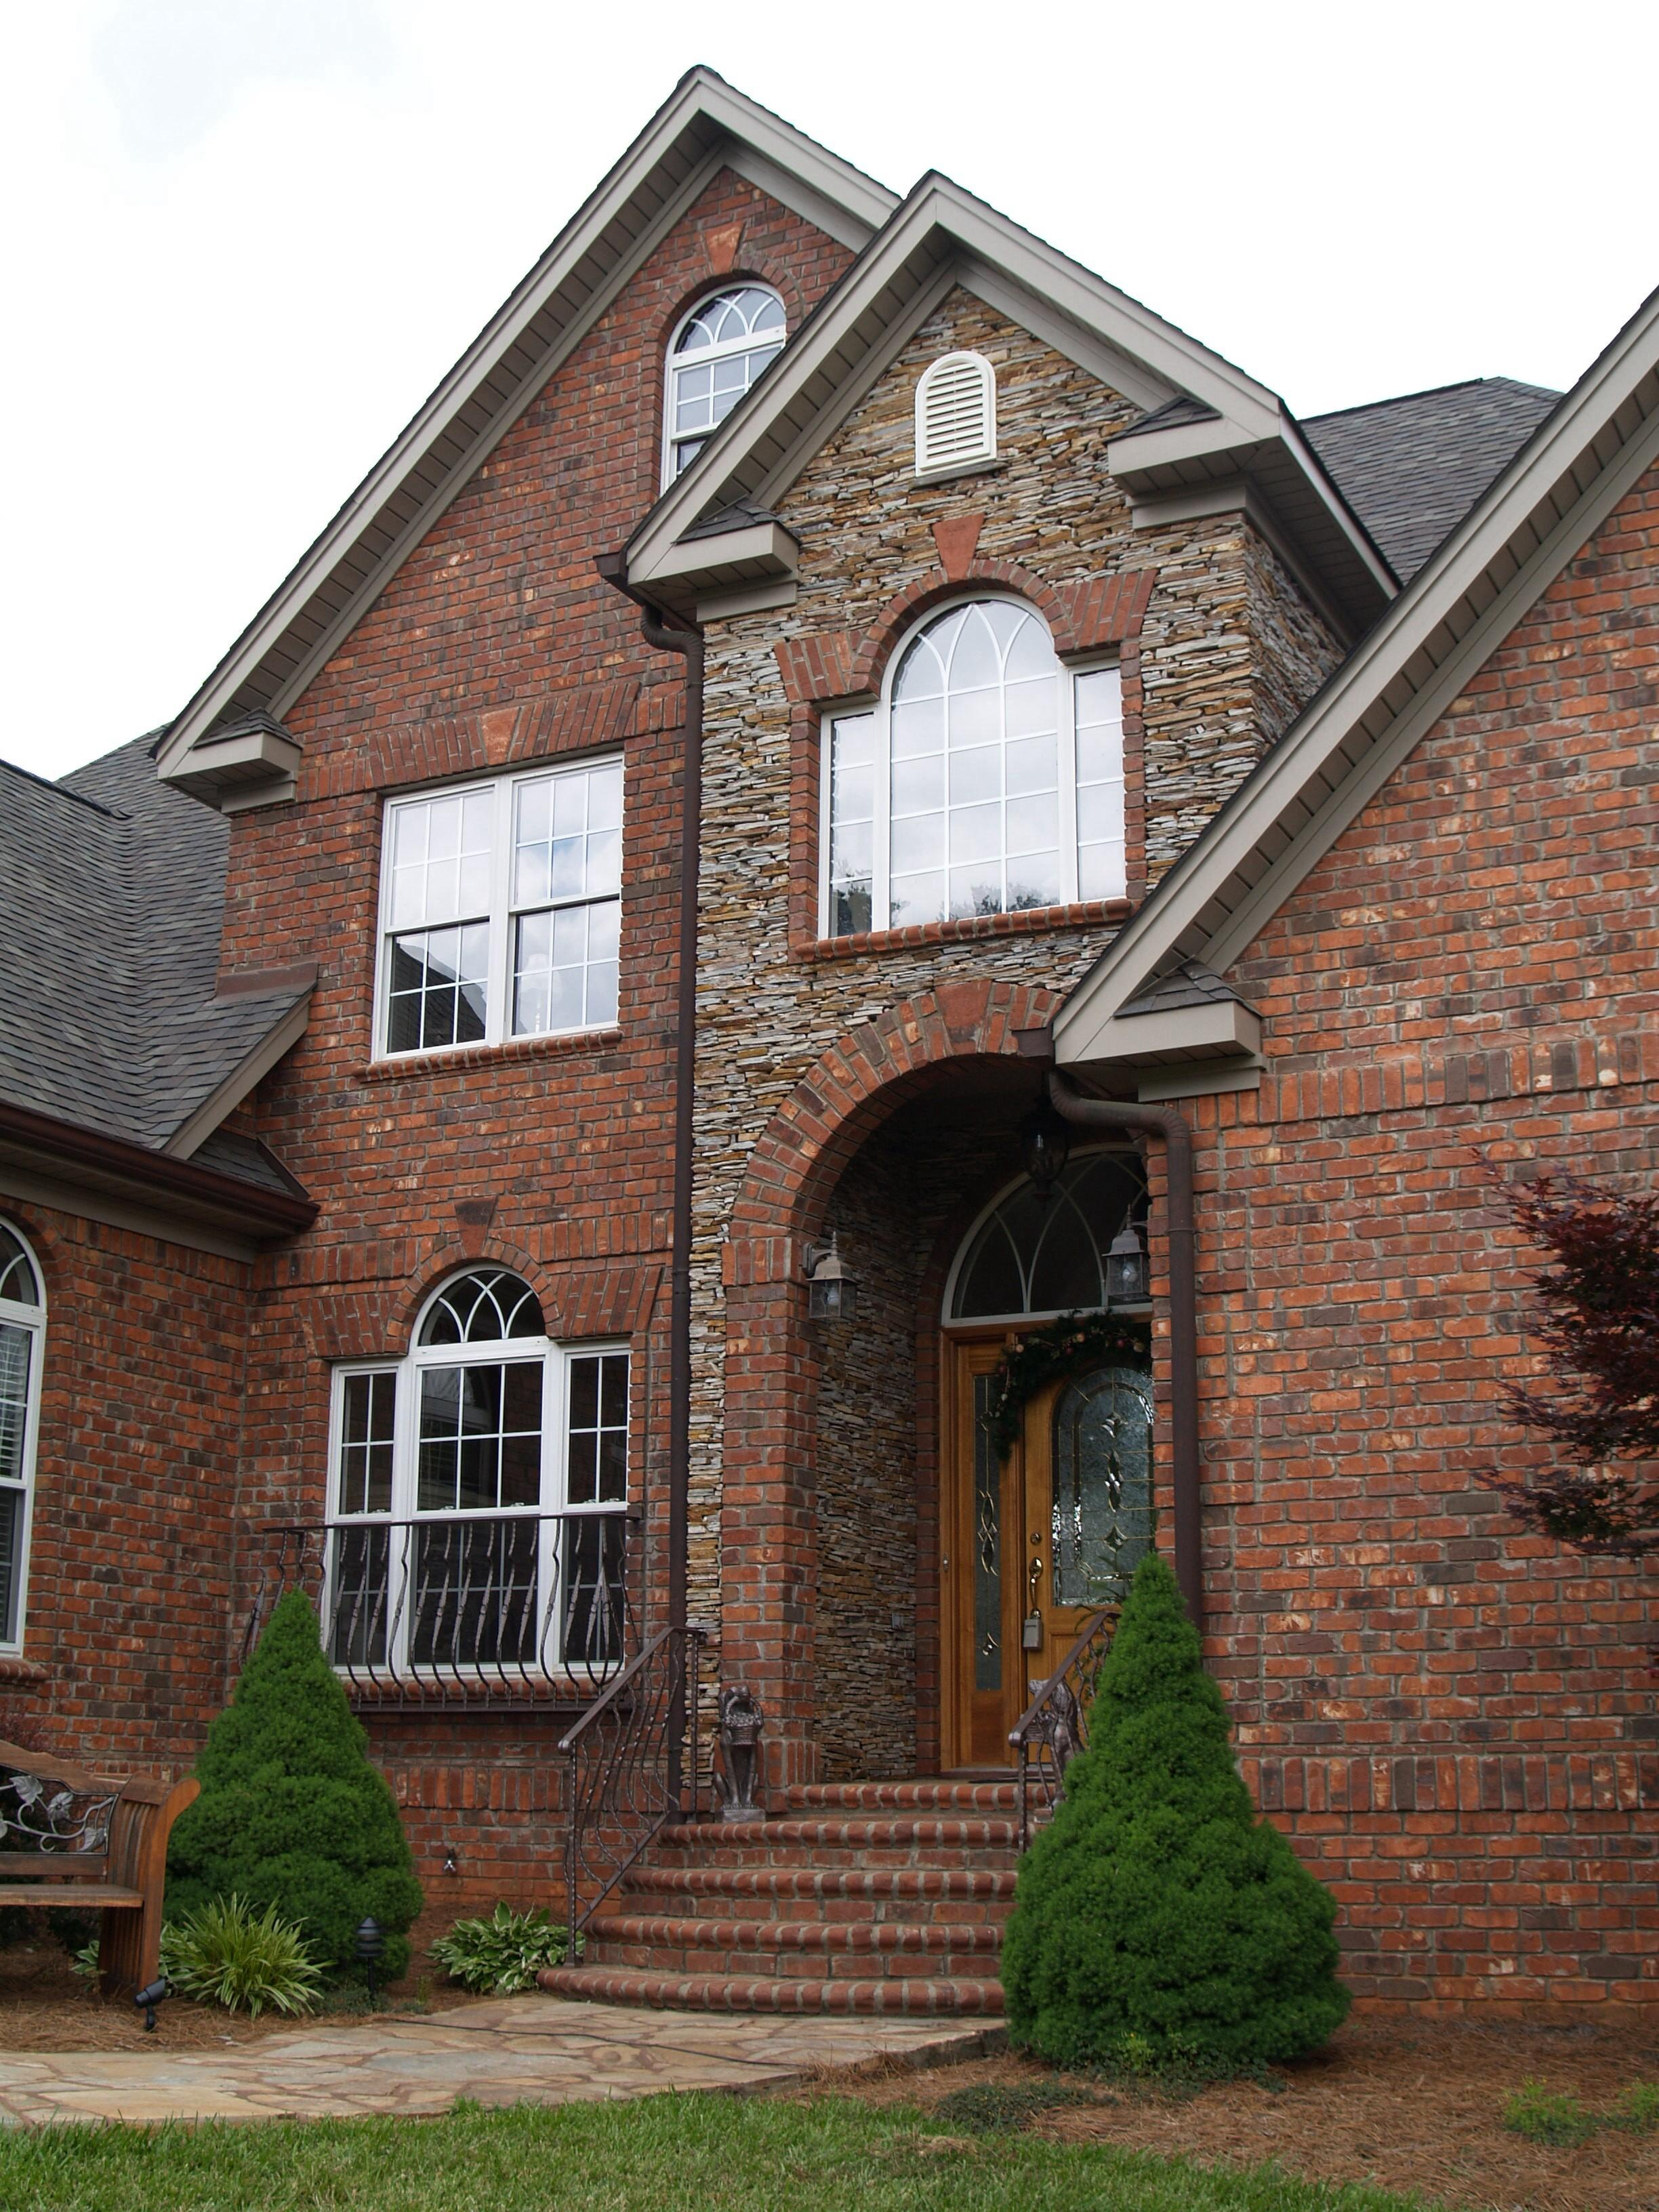 Most popular types of siding for homes homesfeed for Stone and brick home designs